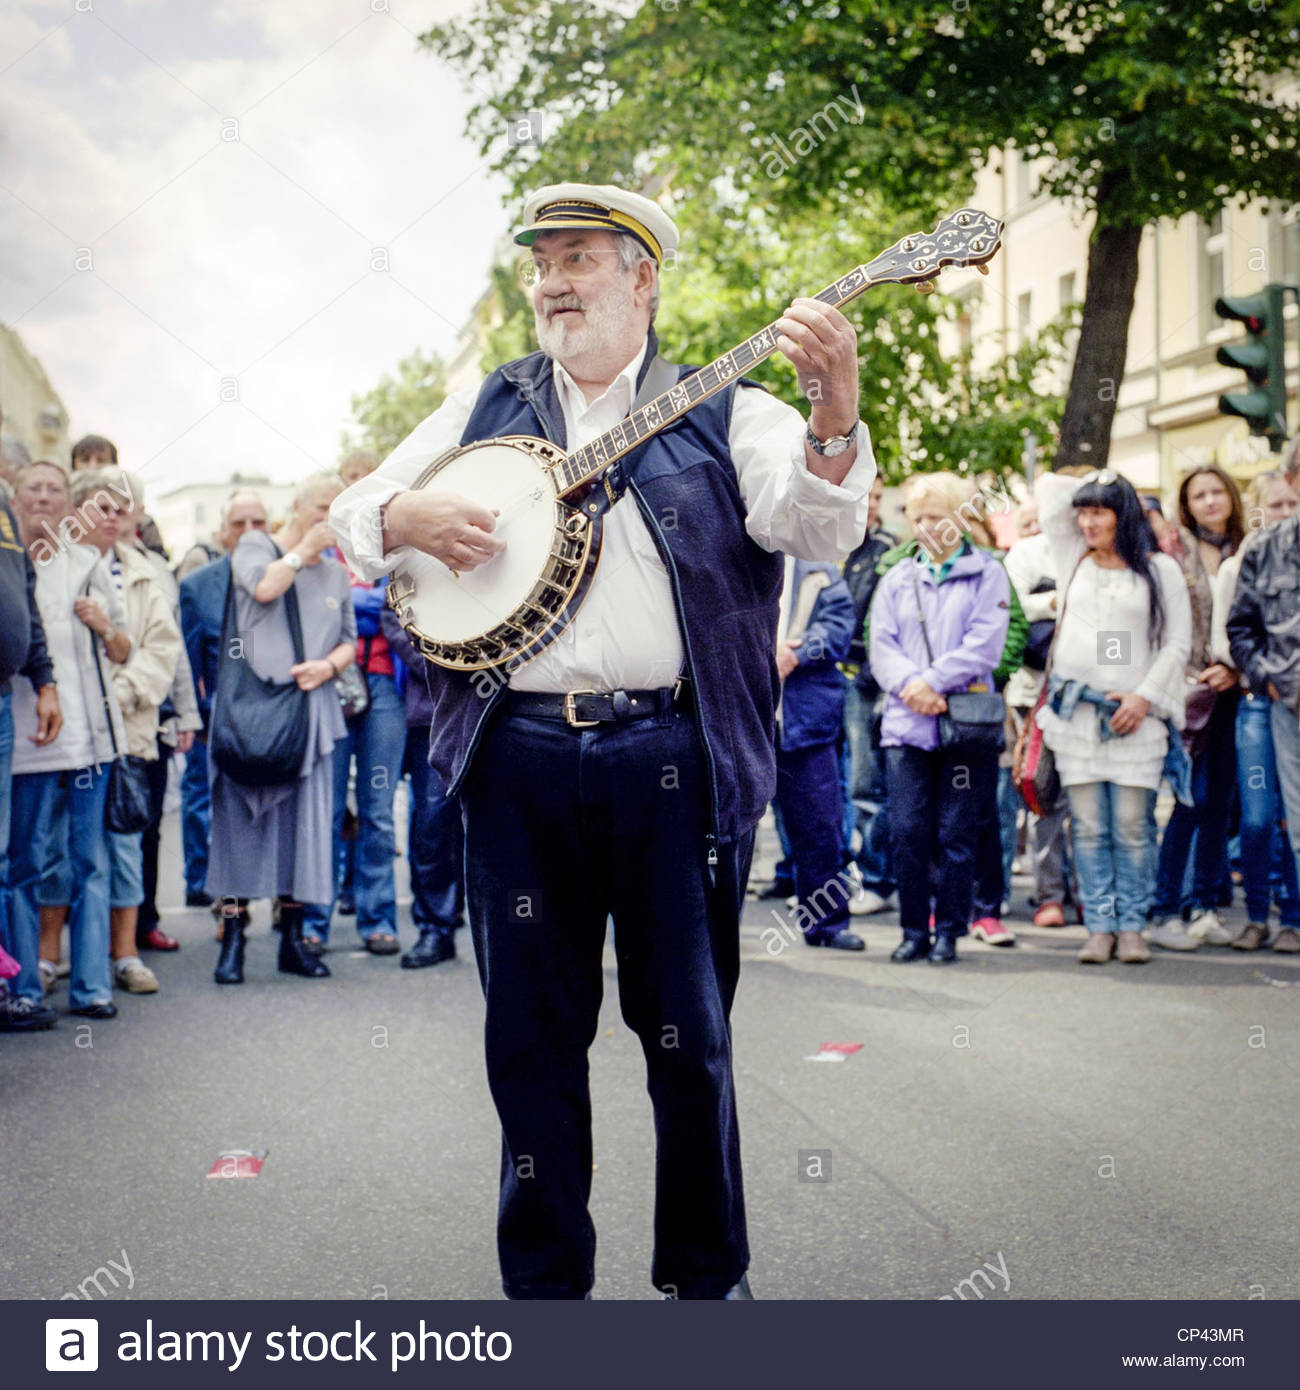 A musician plays a banjo at the Bergmannstraßenfest festival, Berlin, Germany - Stock Image